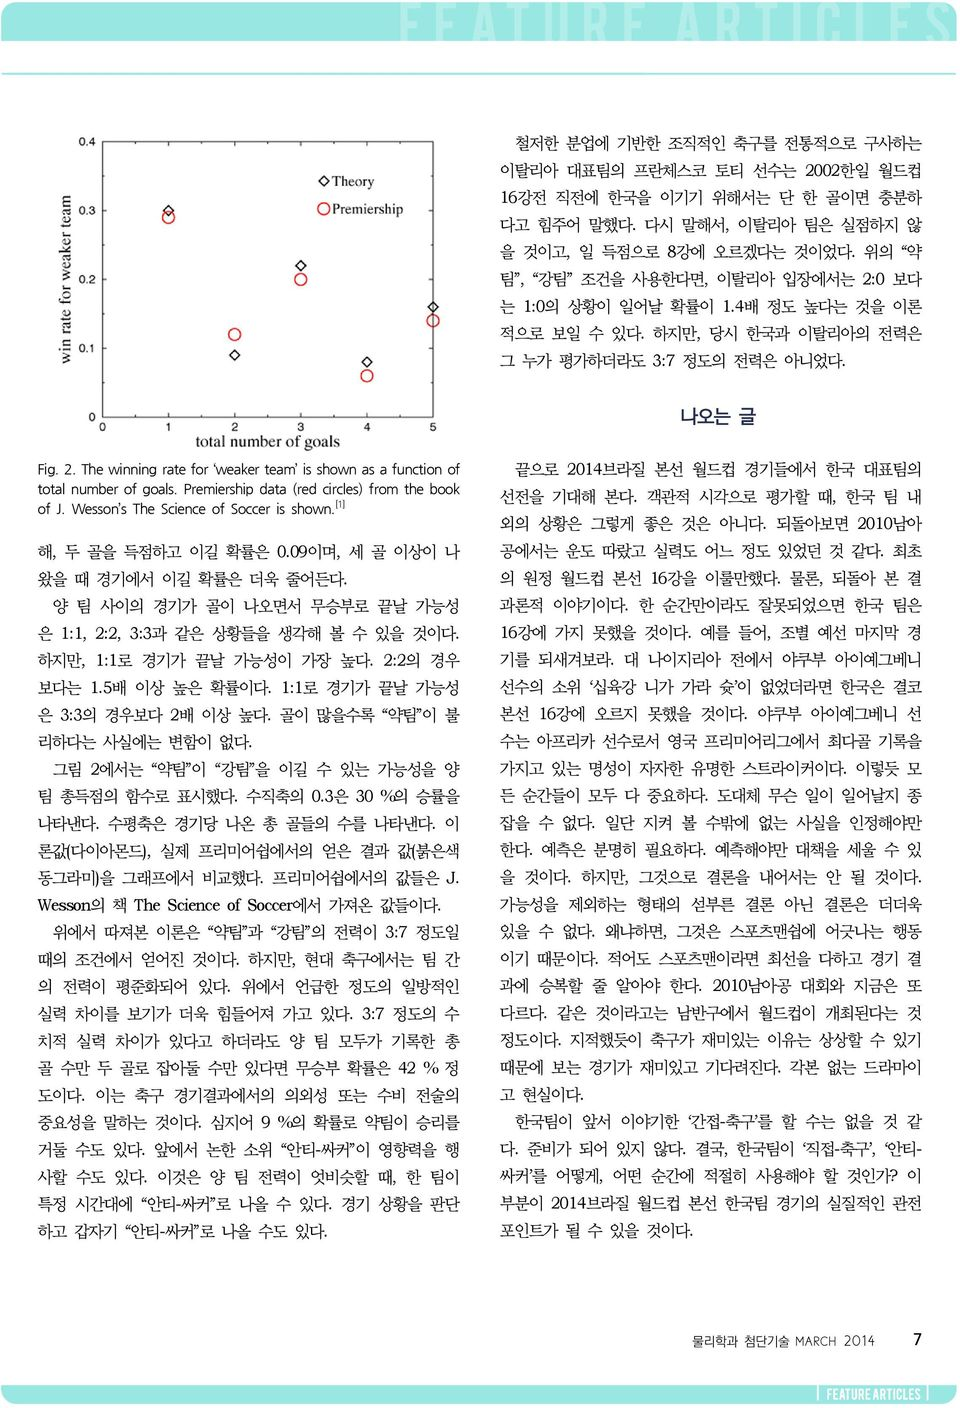 Premiership data (red circles) from the book of J. Wesson s The Science of Soccer is shown. [1] 해, 두 골을 득점하고 이길 확률은 0.09이며, 세 골 이상이 나 왔을 때 경기에서 이길 확률은 더욱 줄어든다.